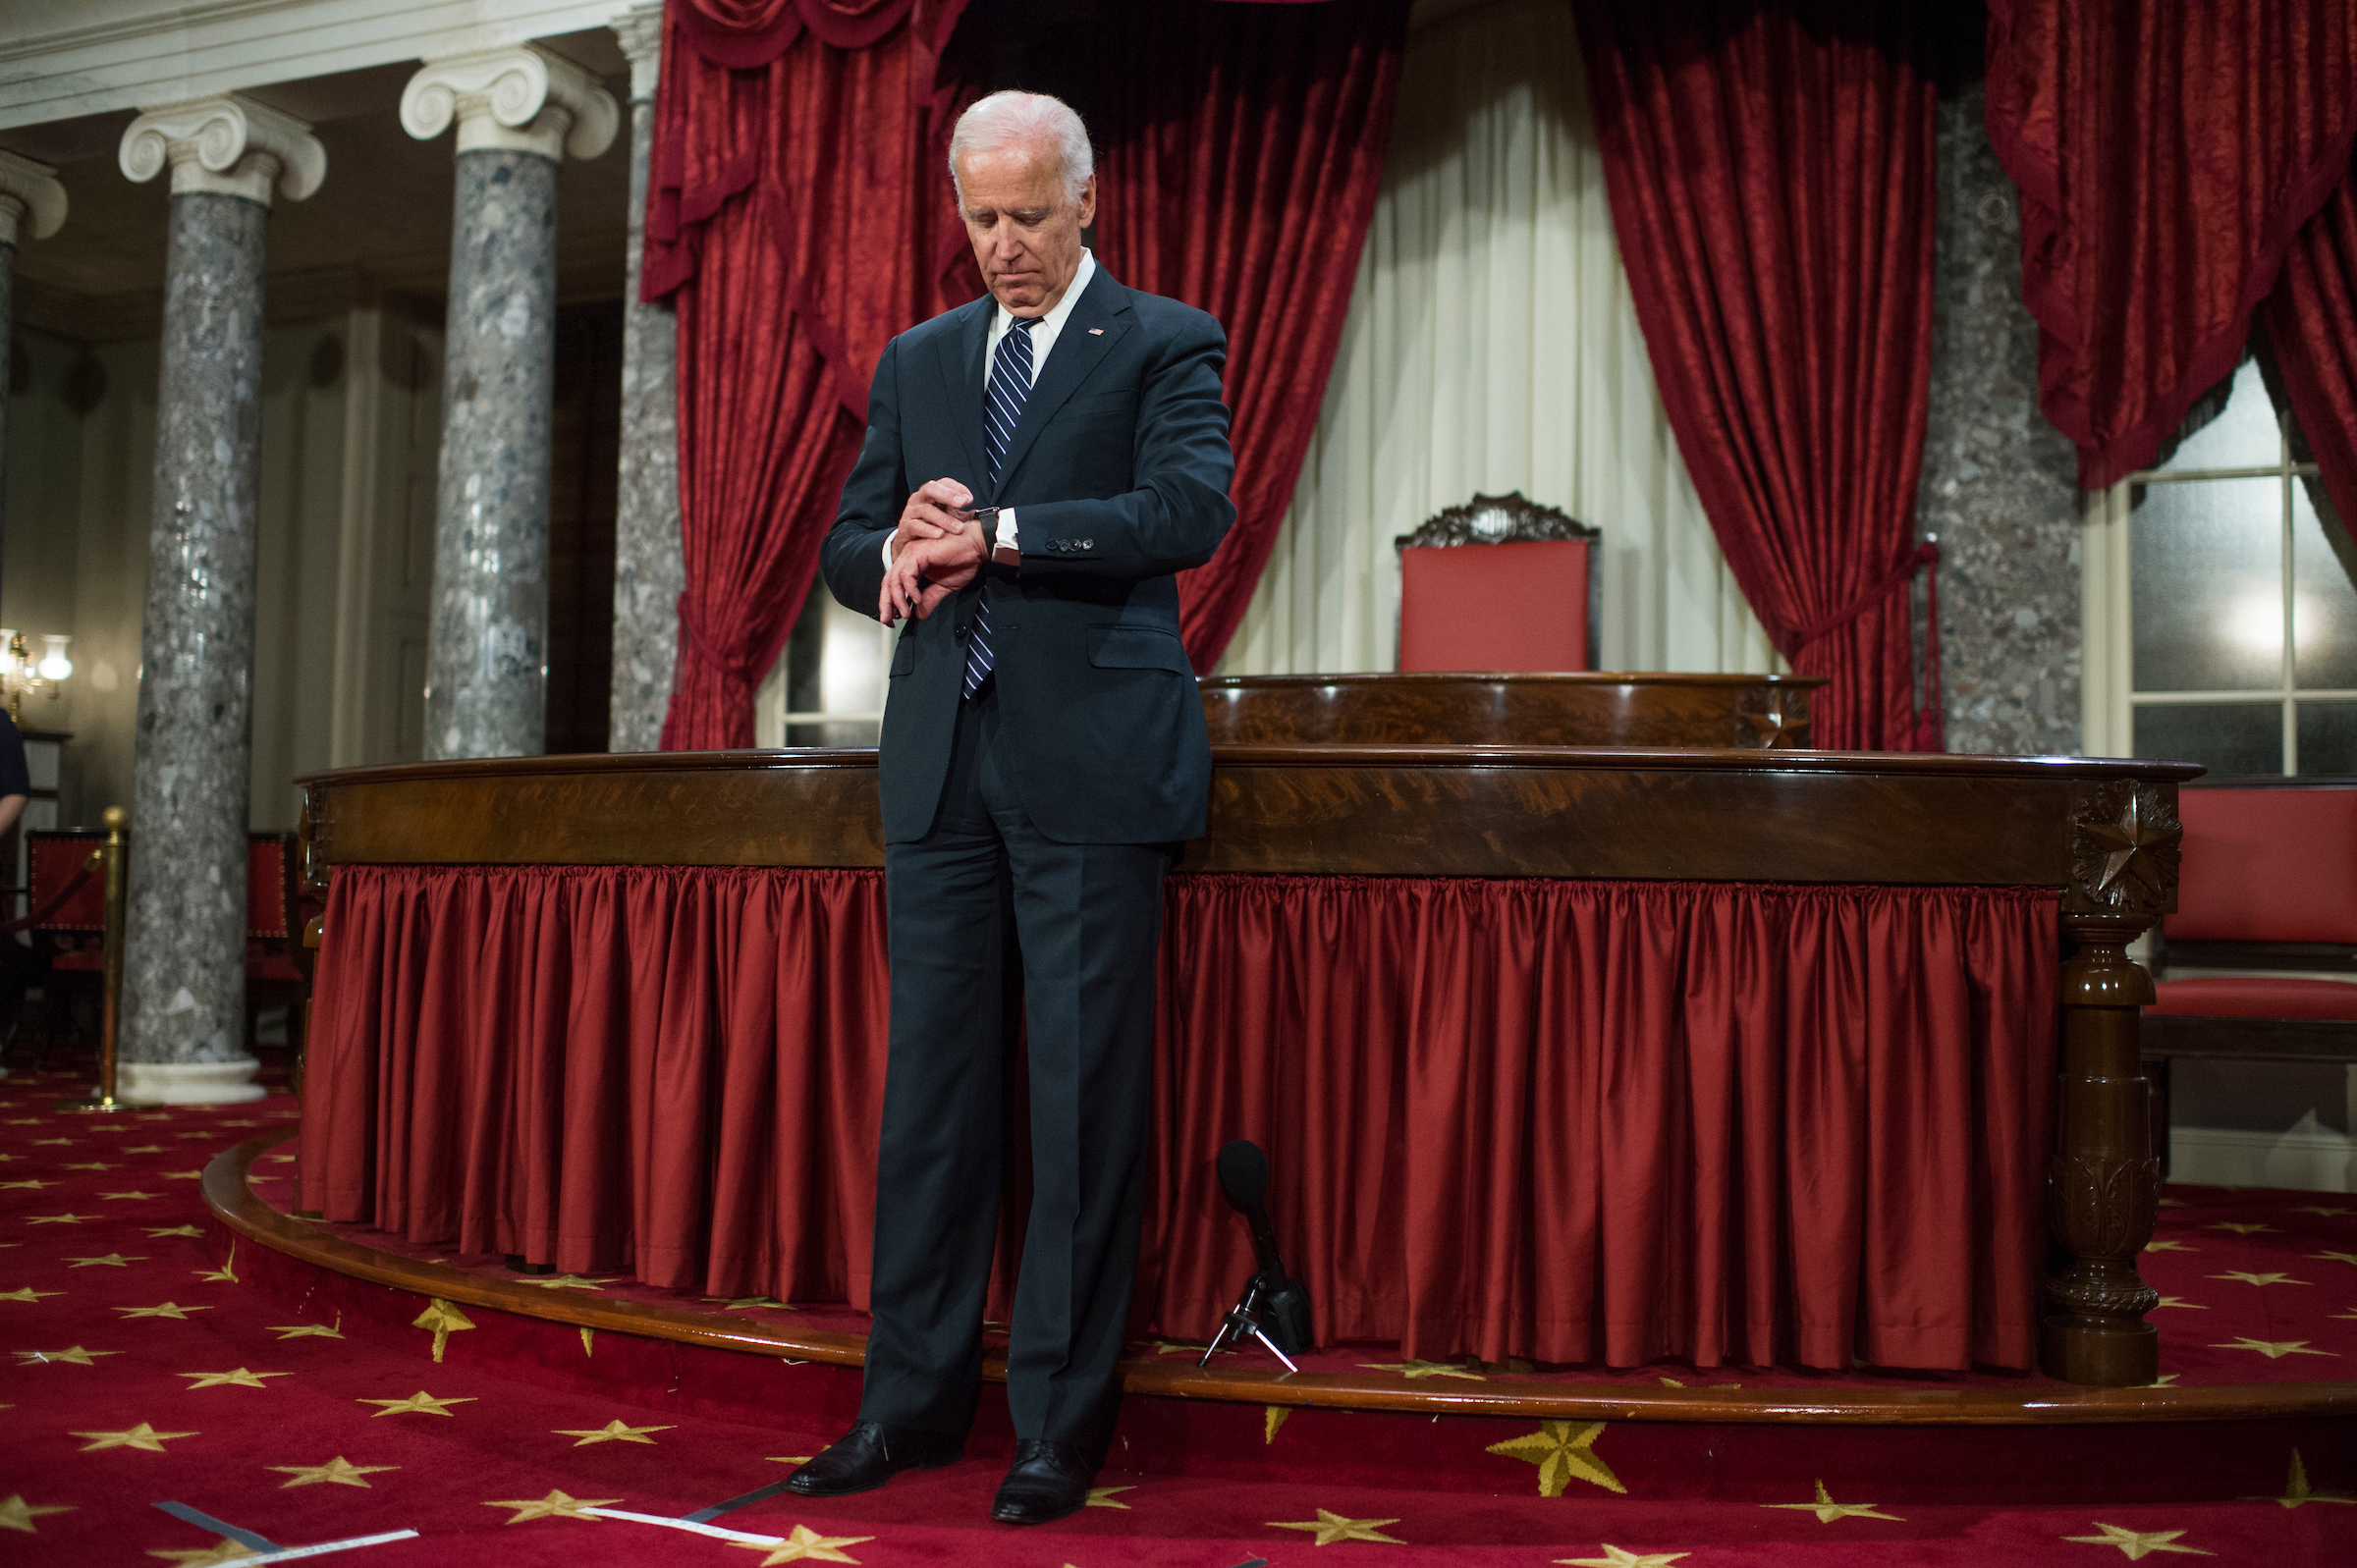 Biden waits for the next senator during the ceremonial swearings-in in the Old Senate Chamber on Tuesday. (Tom Williams/CQ Roll Call)